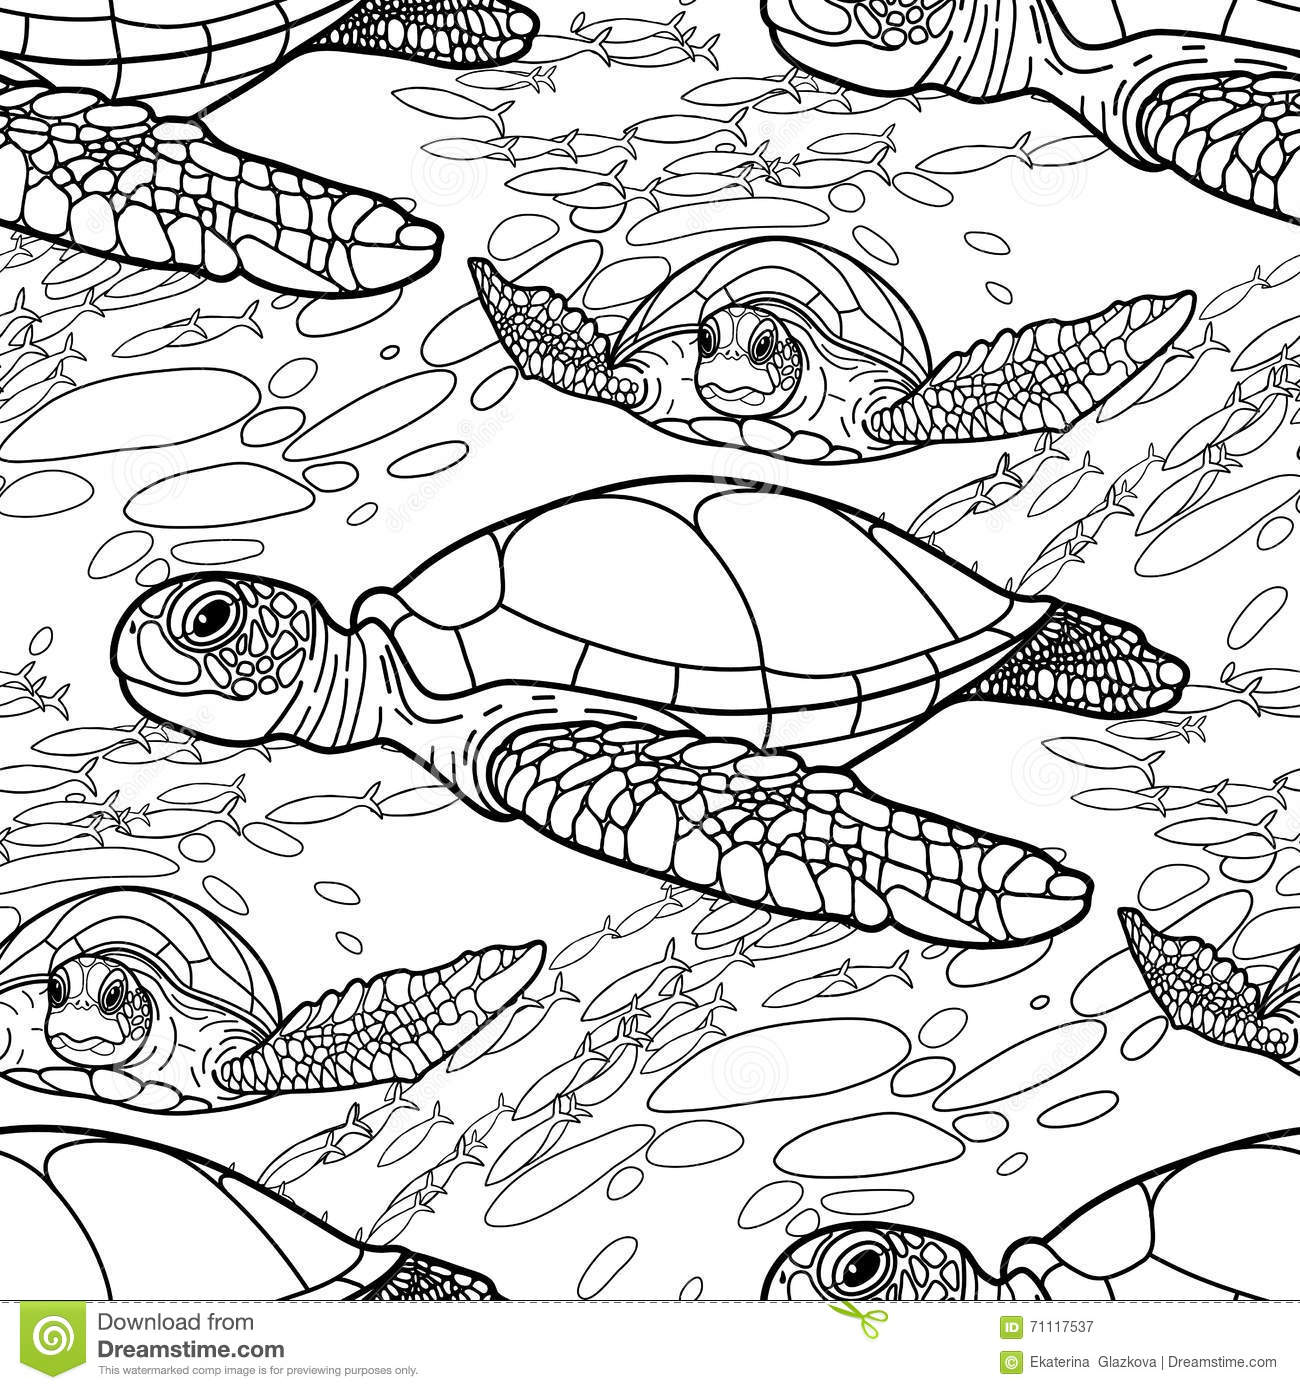 graphic coloring pages - photo#21